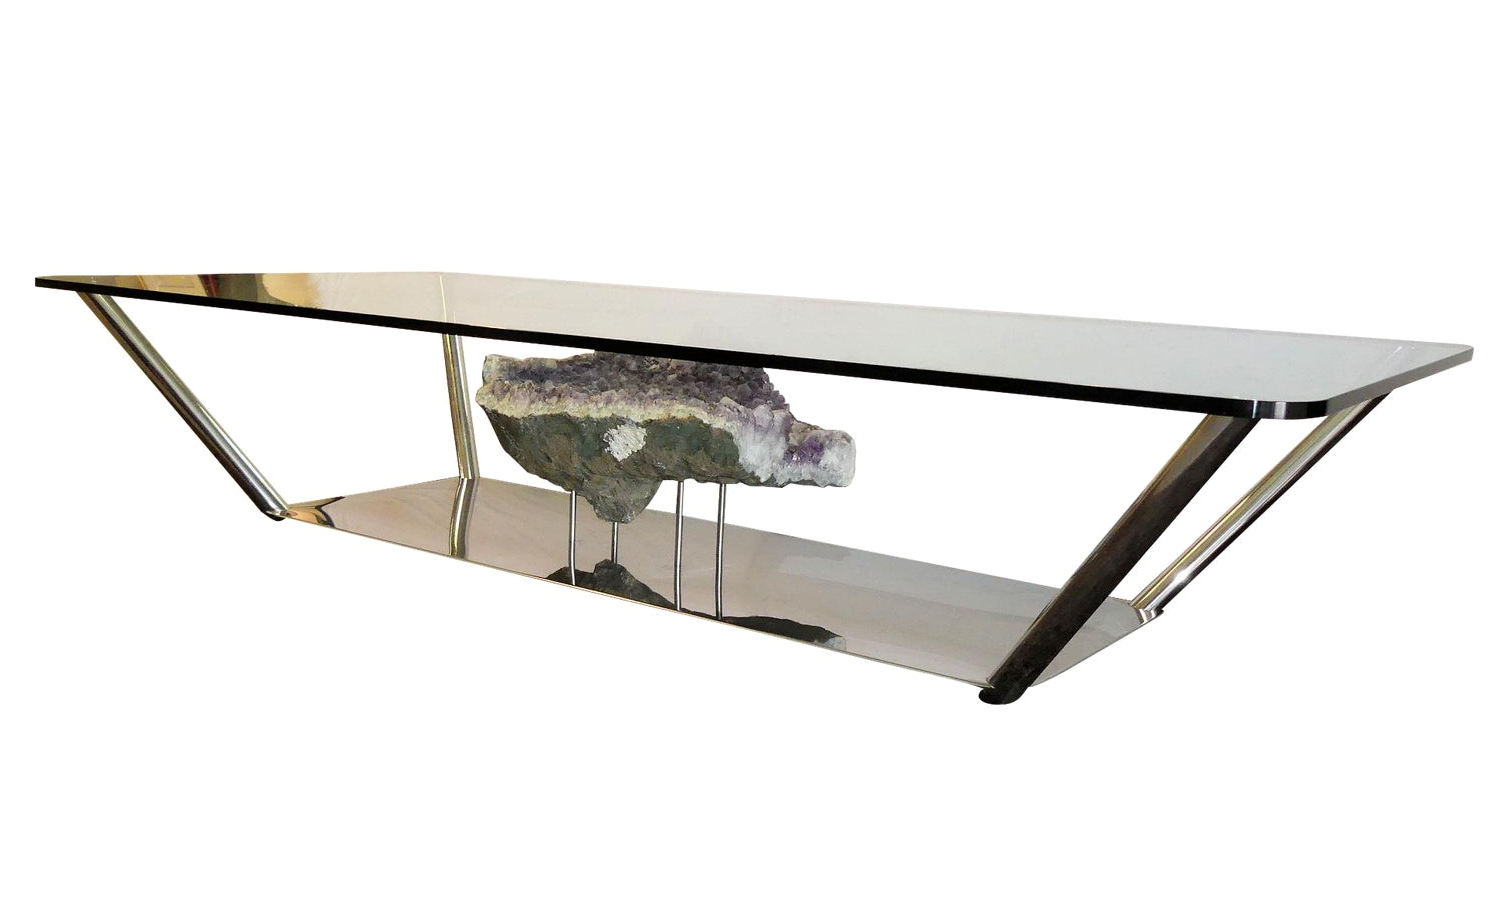 Stainless Steel Coffee Table with Large Amethyst Geode